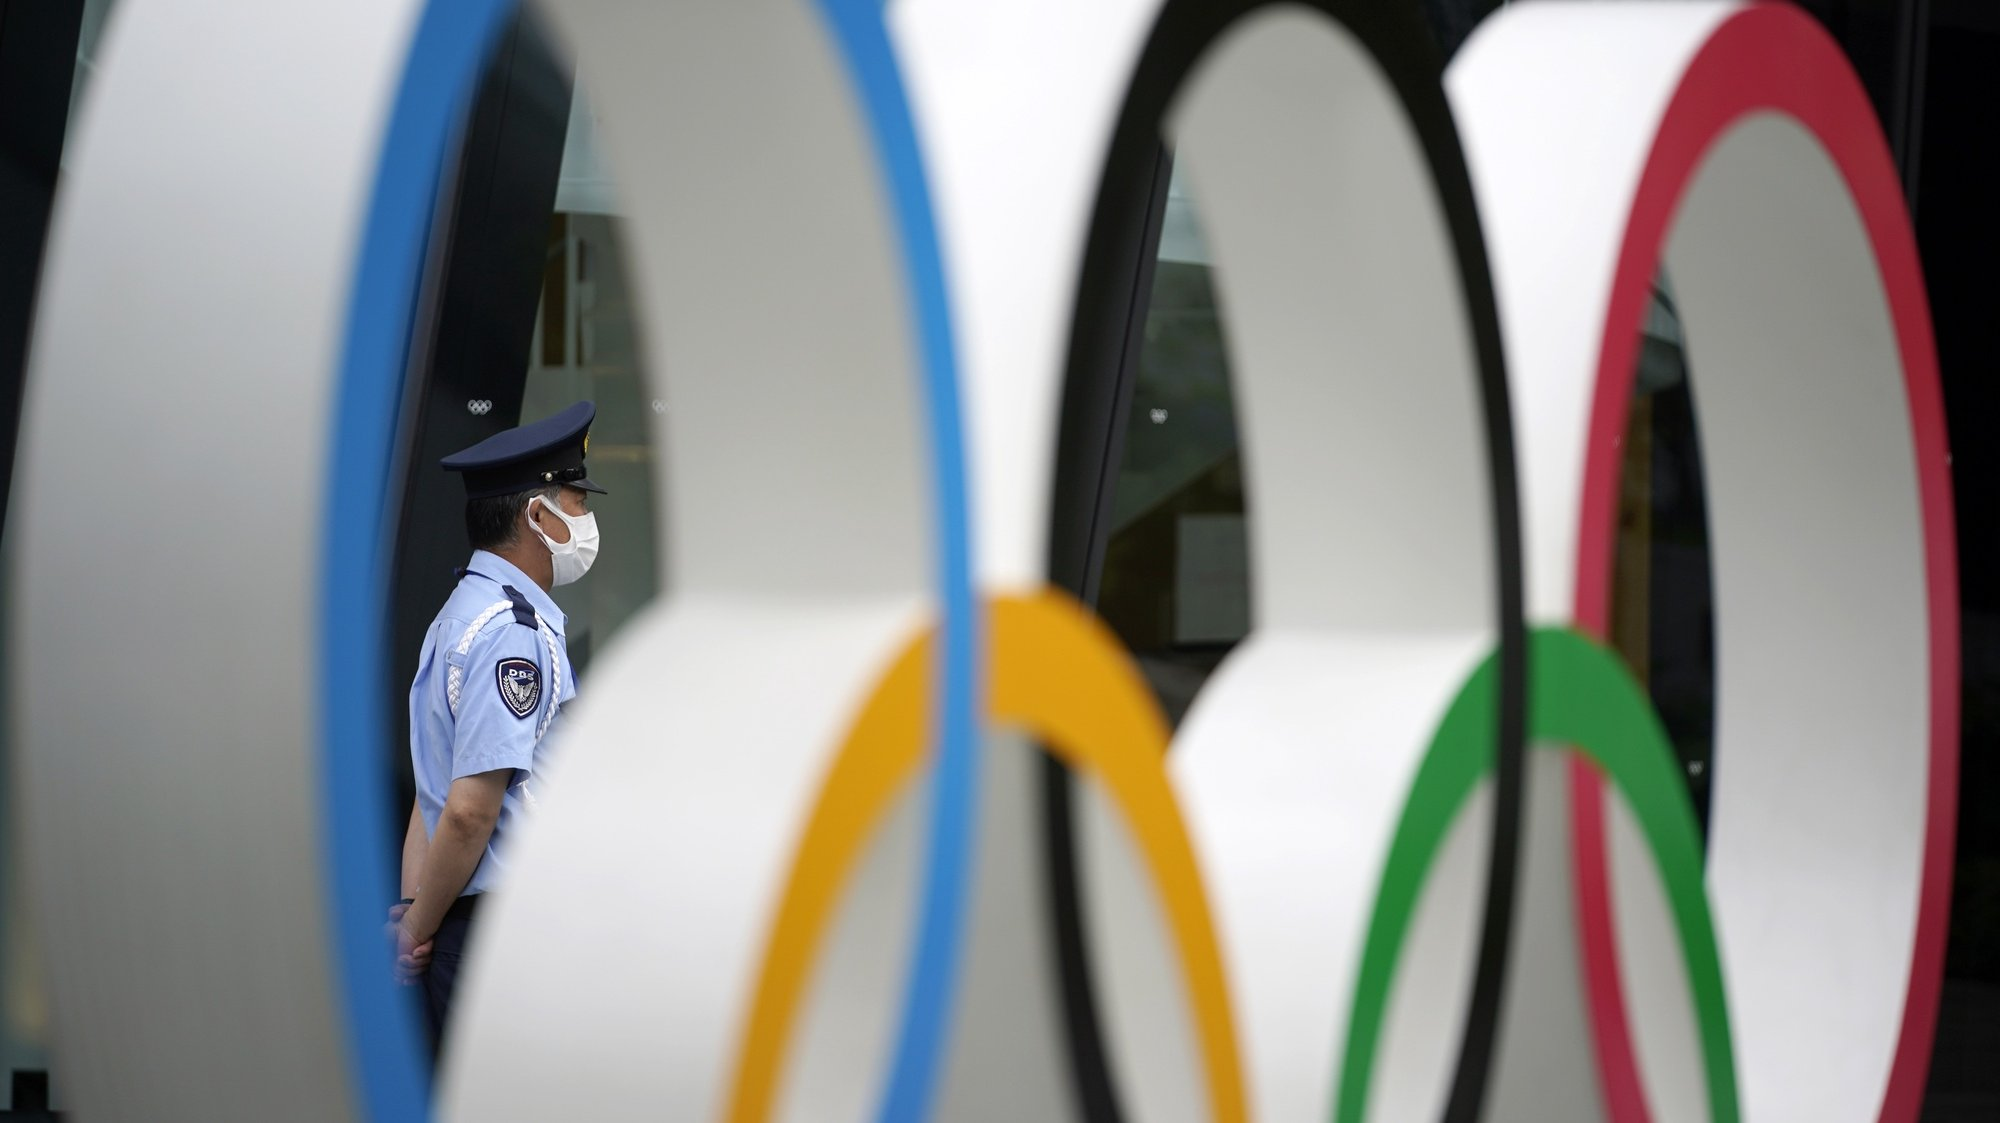 epaselect epa09293117 A security guard is seen through an Olympic Rings monument near the National Stadium, the main stadium of the 2020 Tokyo Olympic Games, in Tokyo, Japan, 22 June 2021. Tokyo will mark one month before the opening of the Tokyo 2020 Olympic Games on 23 June 2021. The Summer Games were postponed due to COVID-19 Coronavirus pandemic.  EPA/FRANCK ROBICHON